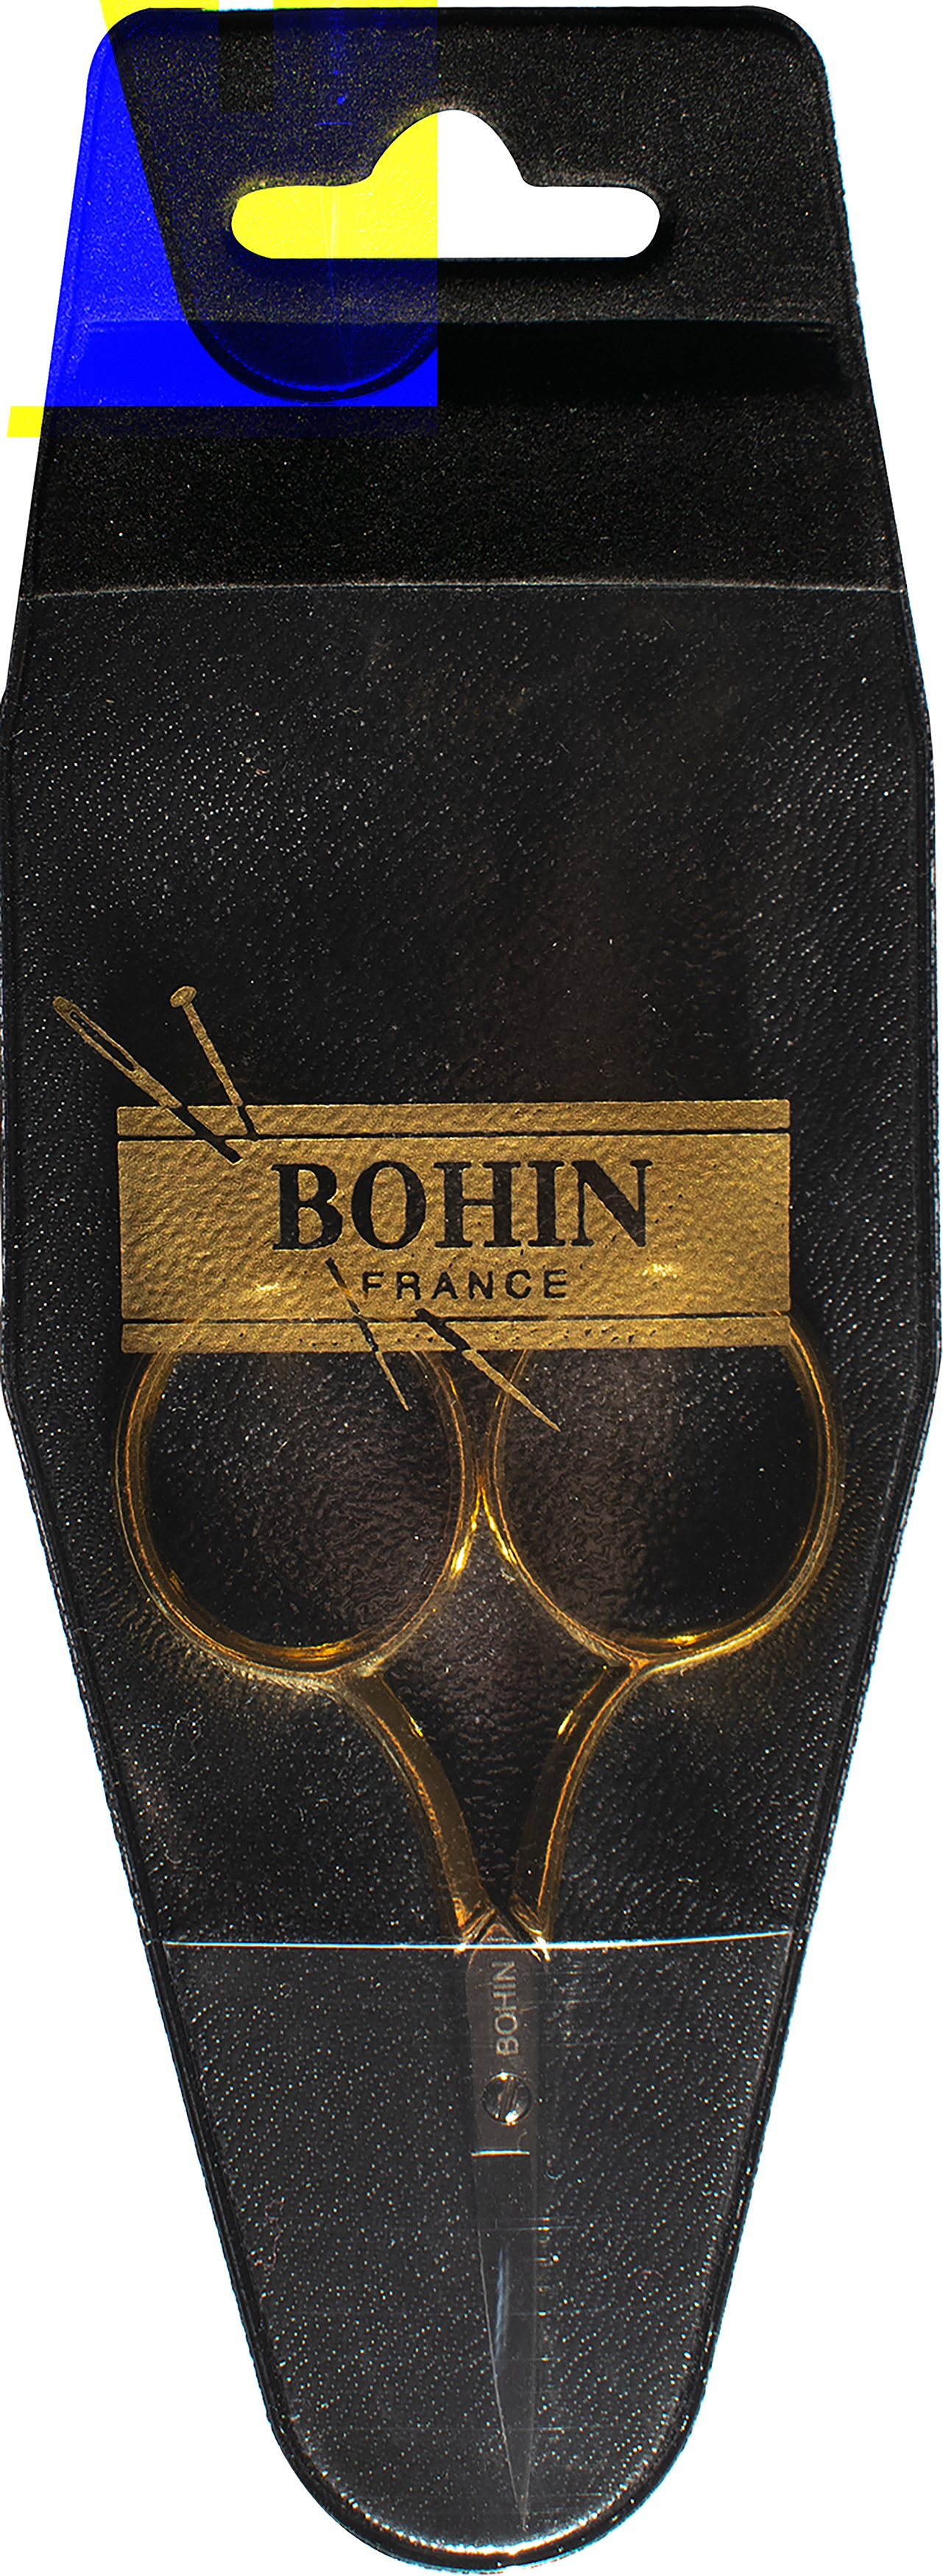 Bohin Embroidery Scissors 3.5-Large Gilt Handle